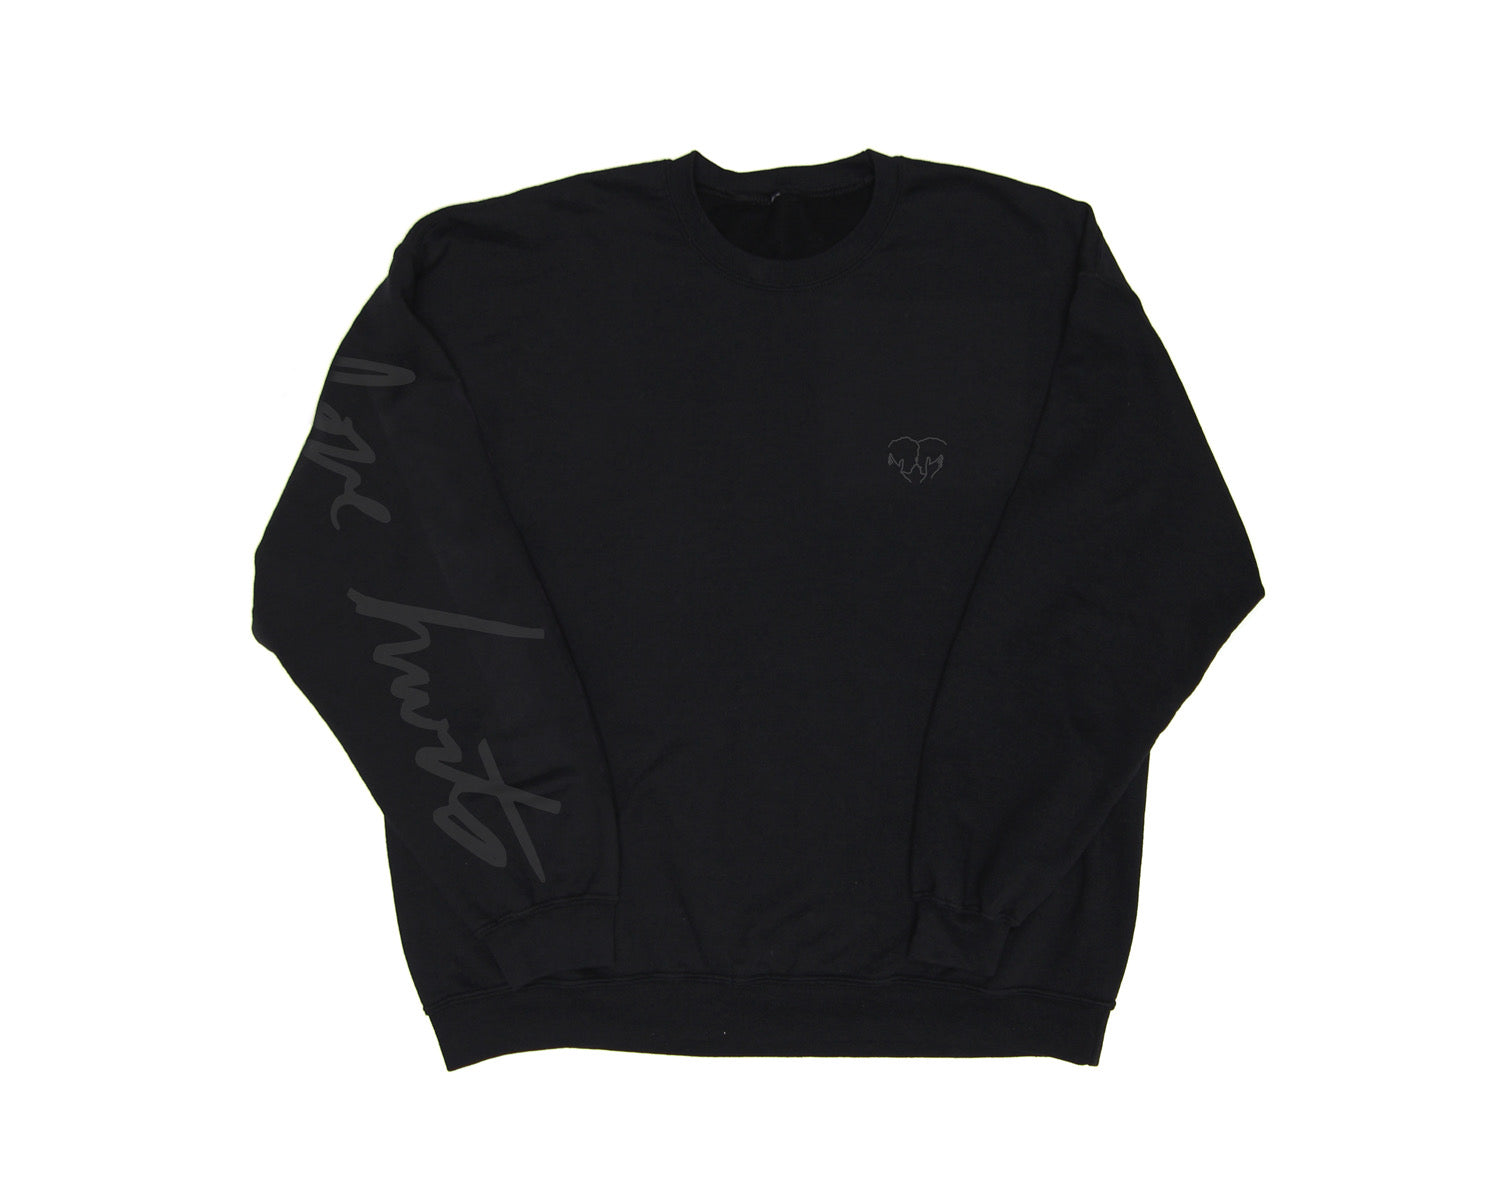 LOVE HURTS CREWNECK SWEATSHIRT BLACK ON BLACK